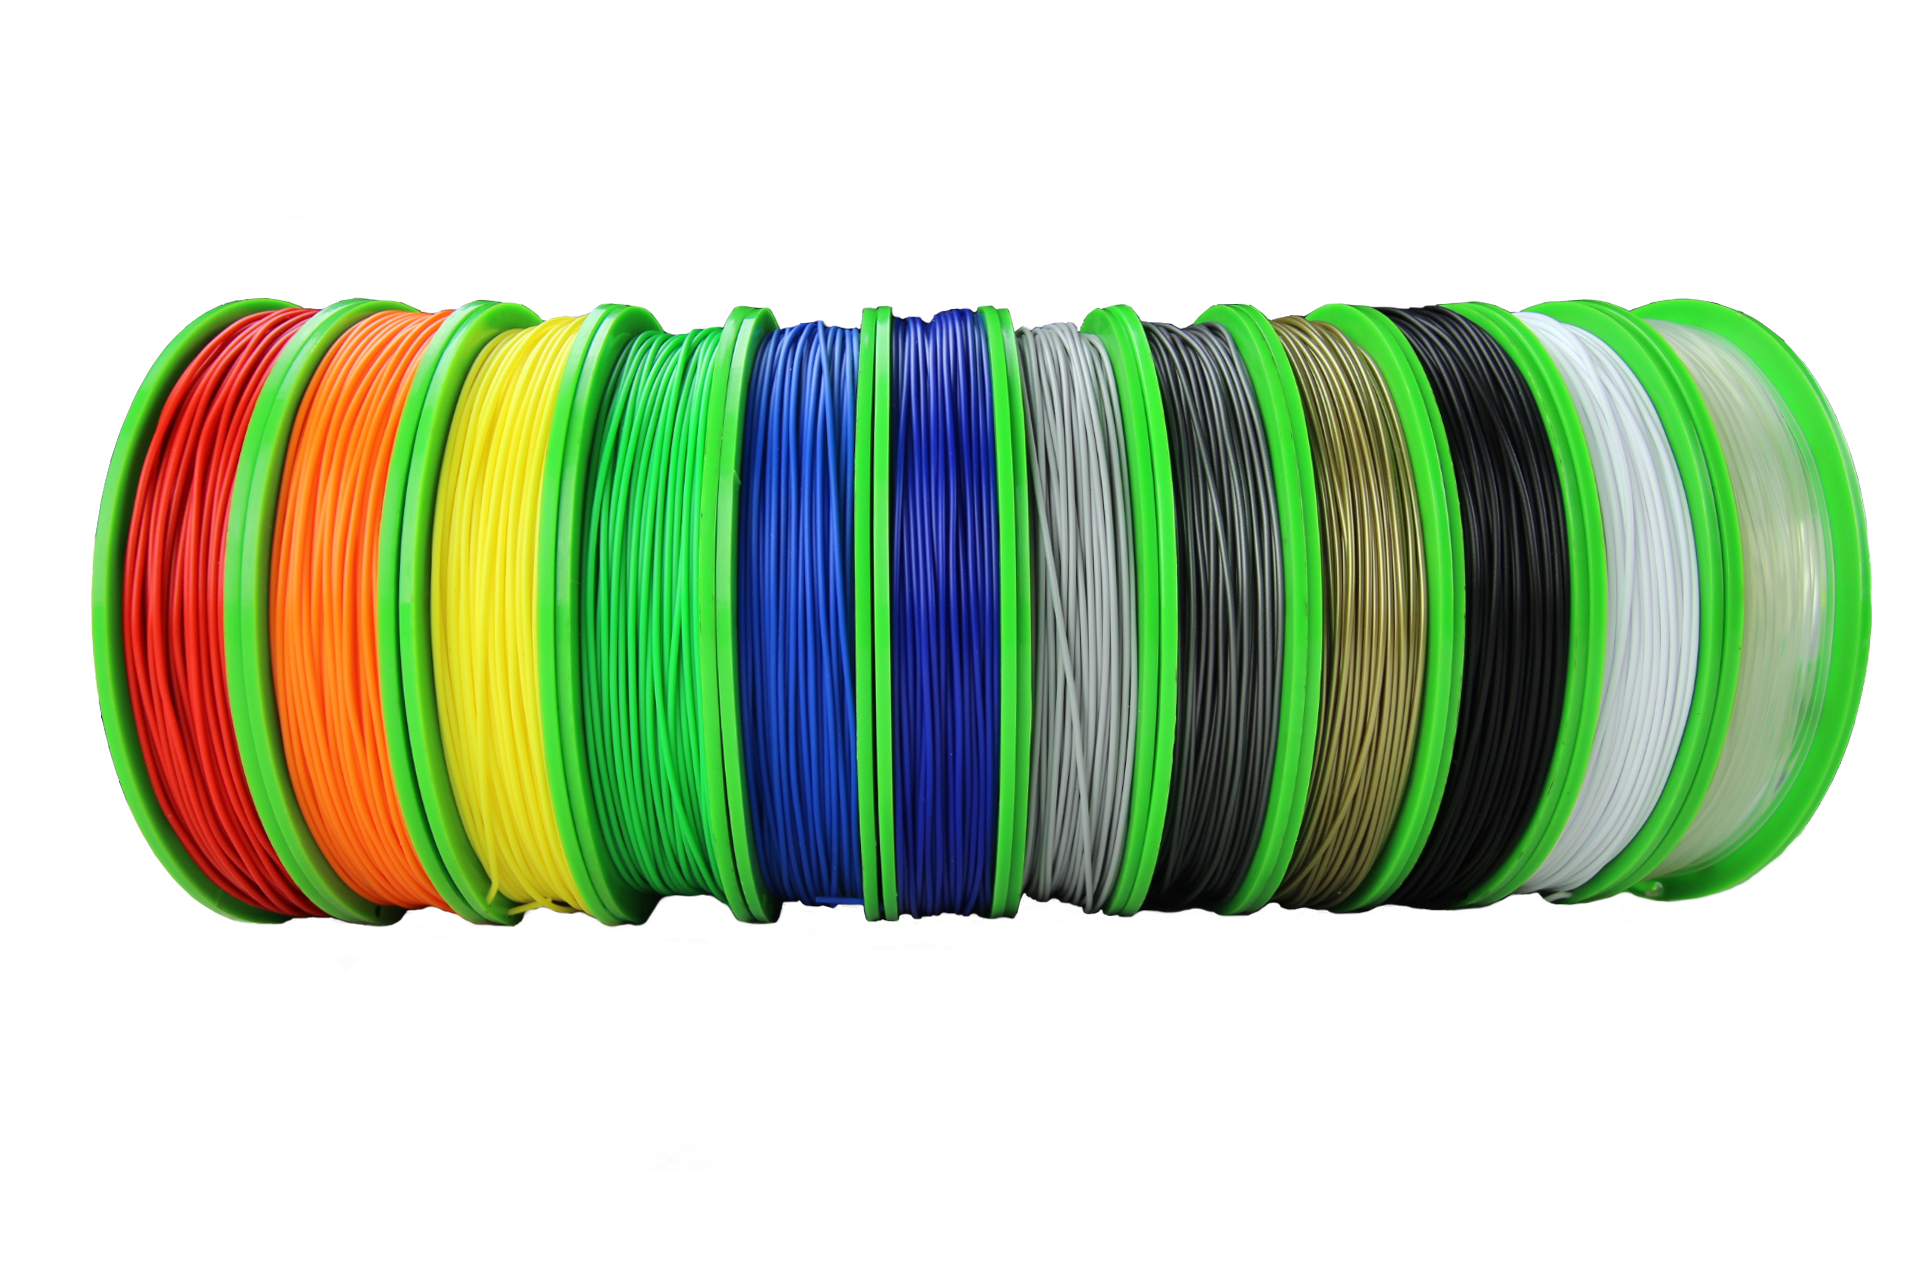 ALGIX 3D APLA ADVANCED PLA FILAMENT